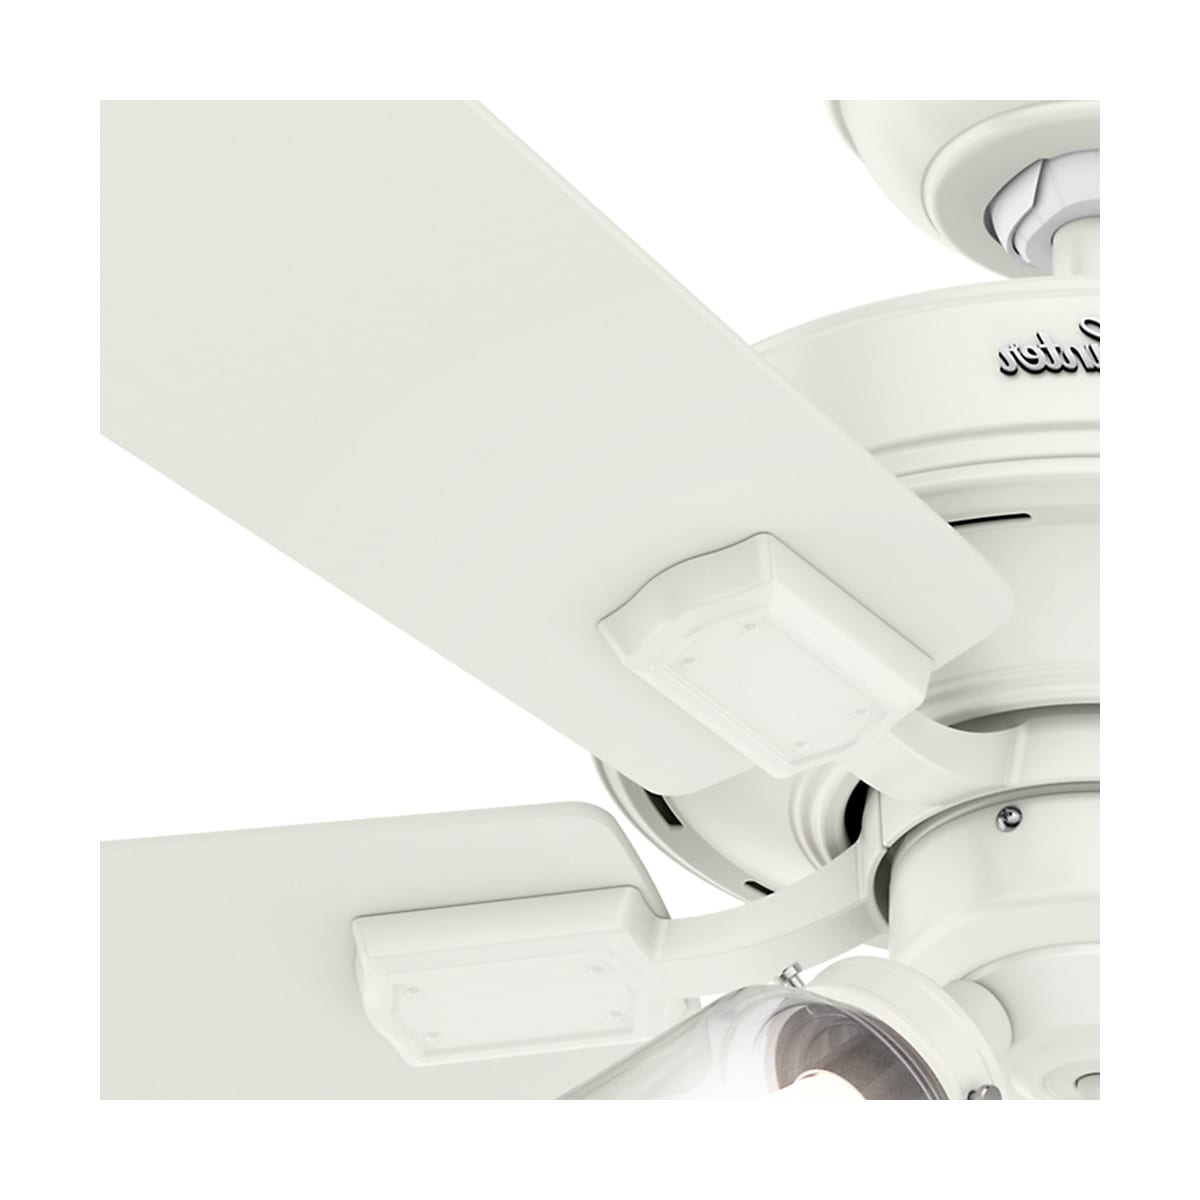 Crestfield 5 Blade Led Ceiling Fans Within 2020 Hunter Crestfield 52 Led (View 8 of 20)